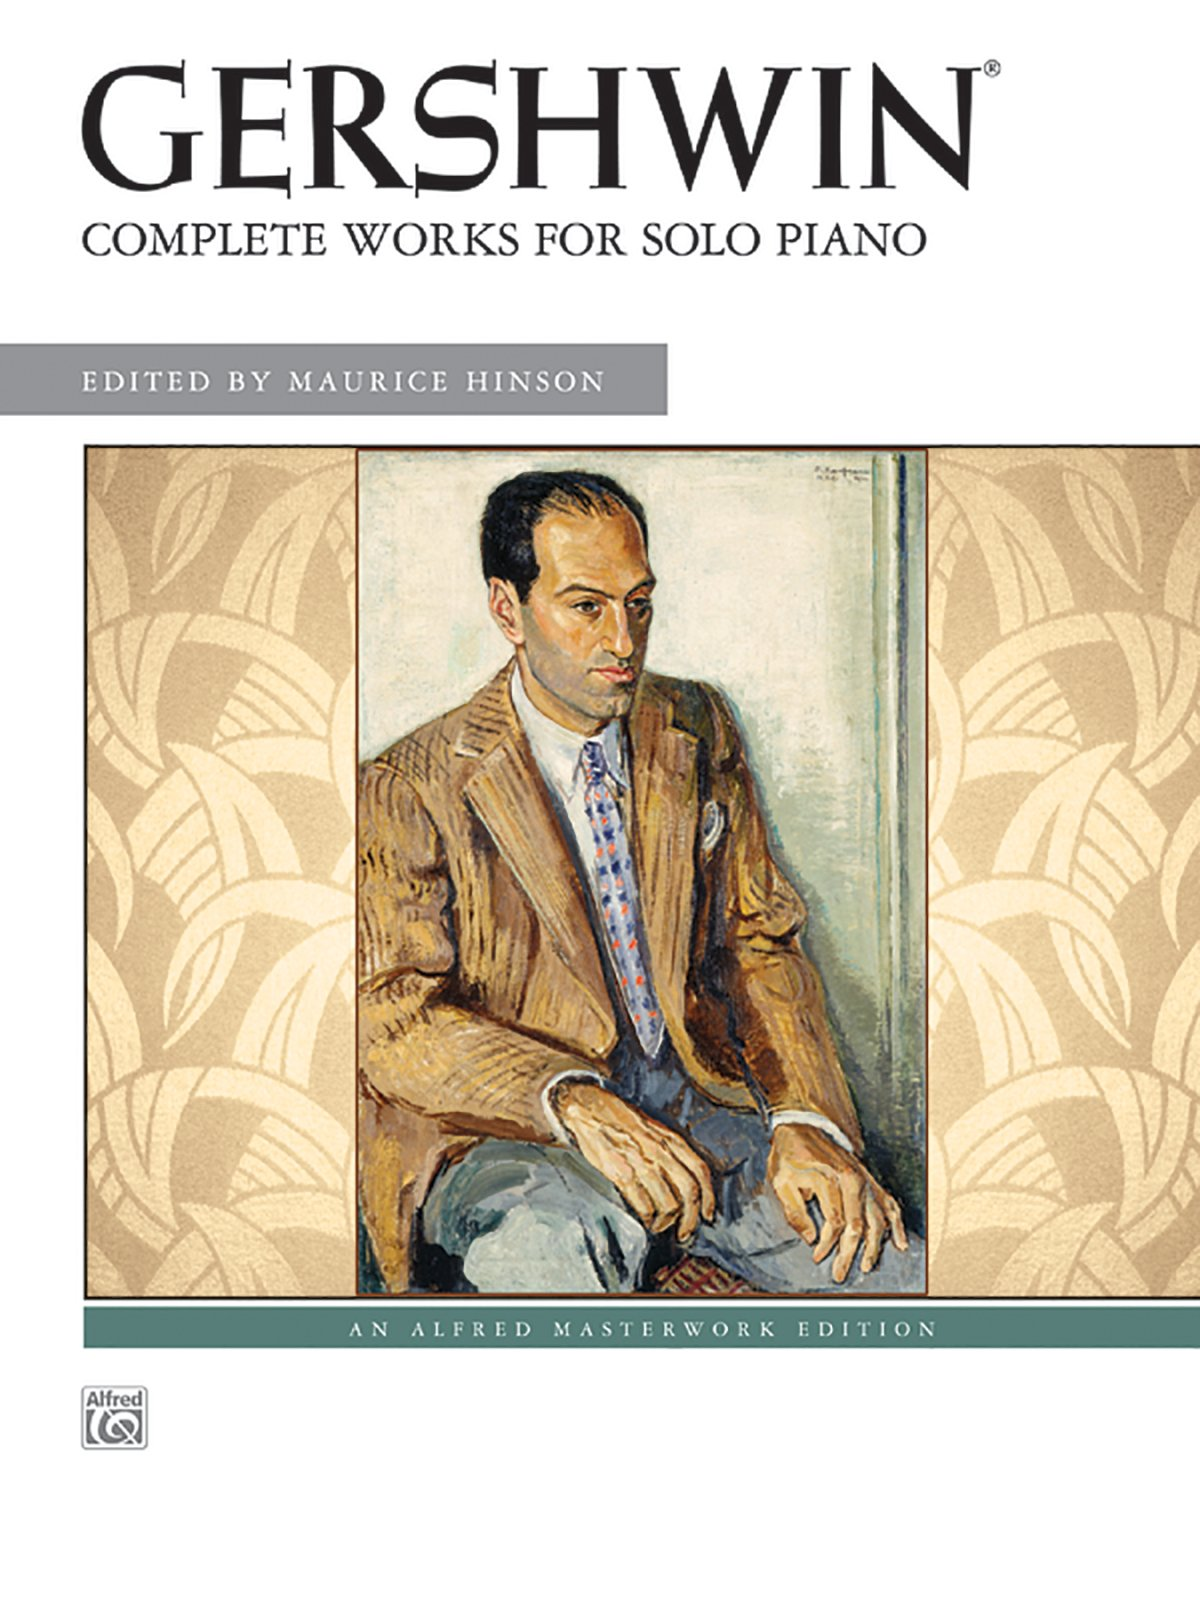 Download George Gershwin -- Complete Works for Solo Piano (Alfred Masterwork Edition) ebook